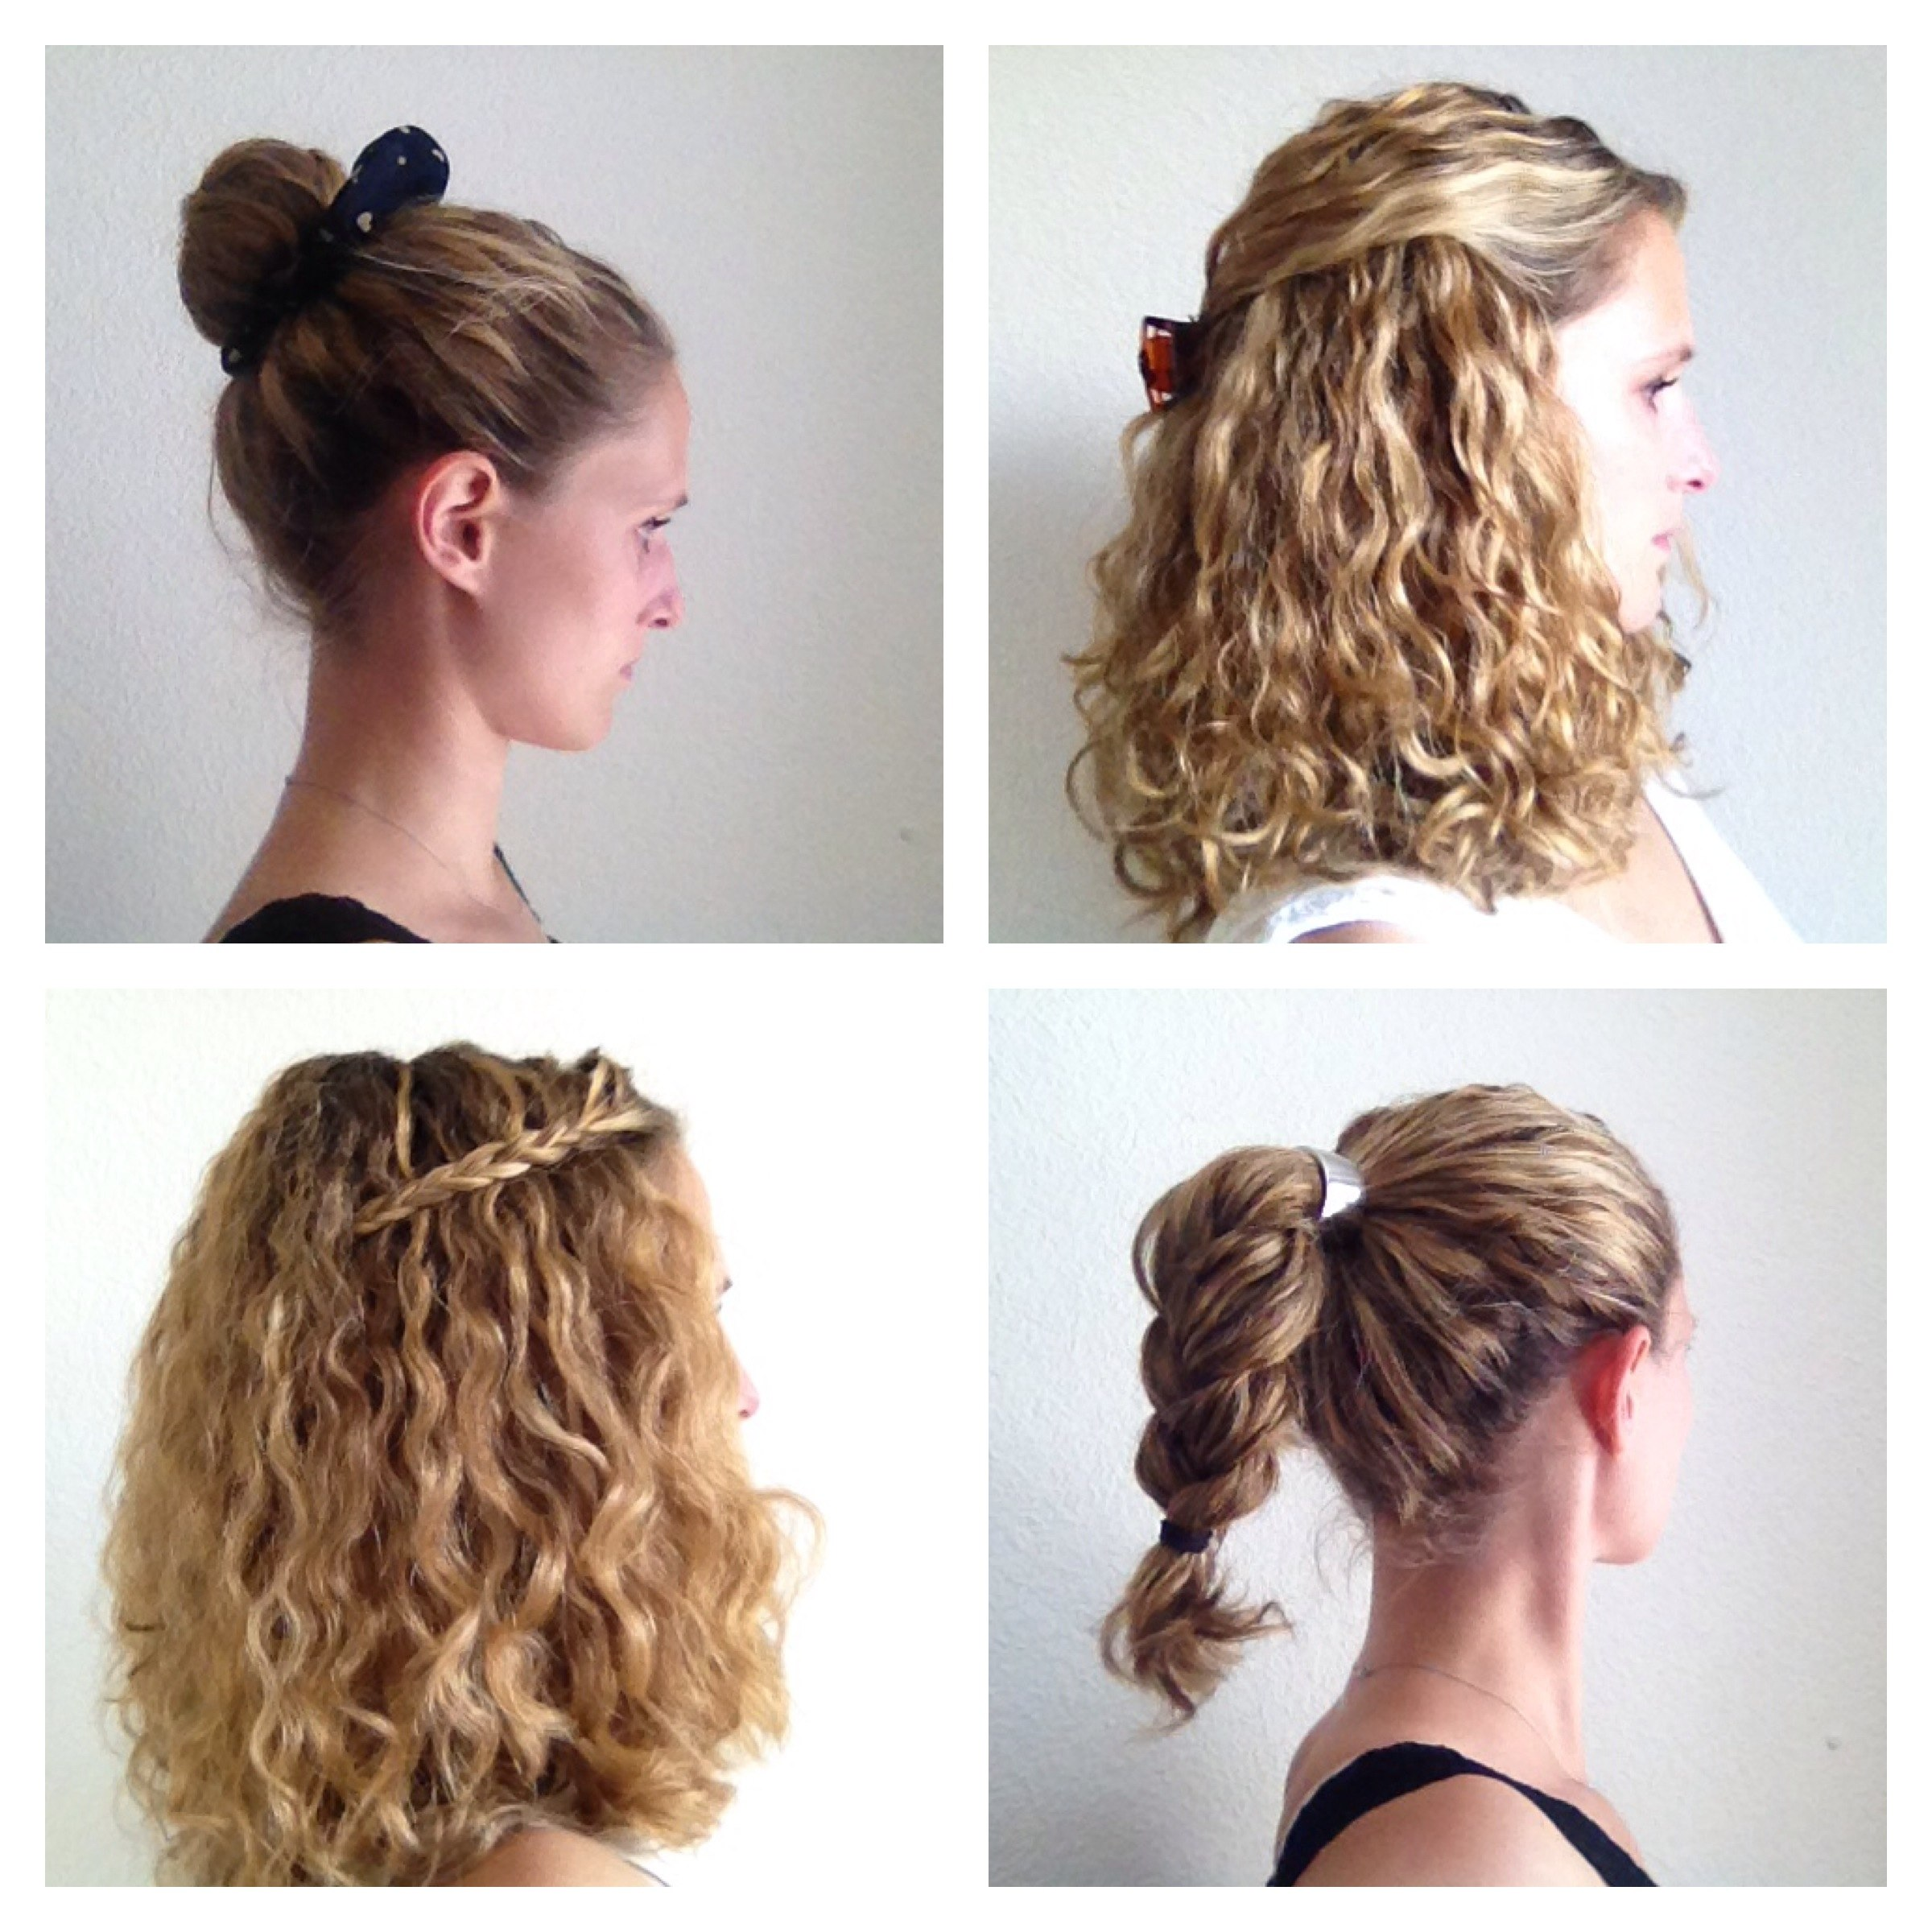 Four styling ideas for curly hair , JustCurly.com